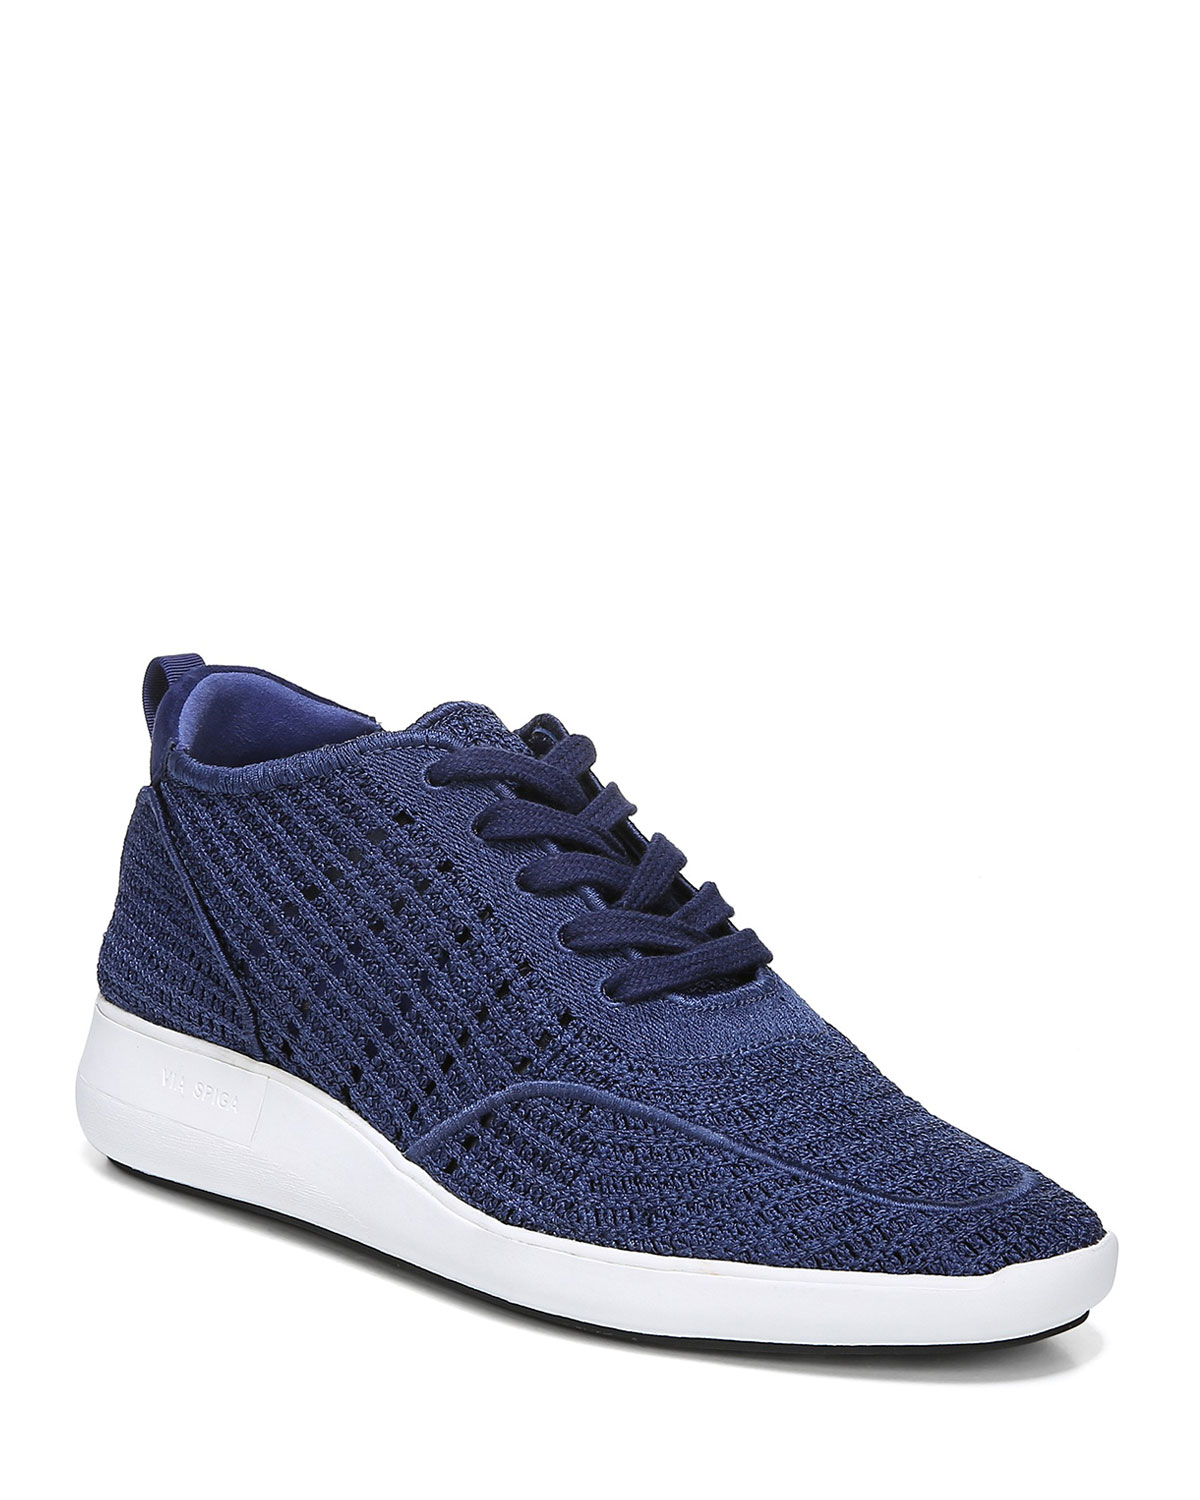 Macra Woven Lace-Up Sneakers